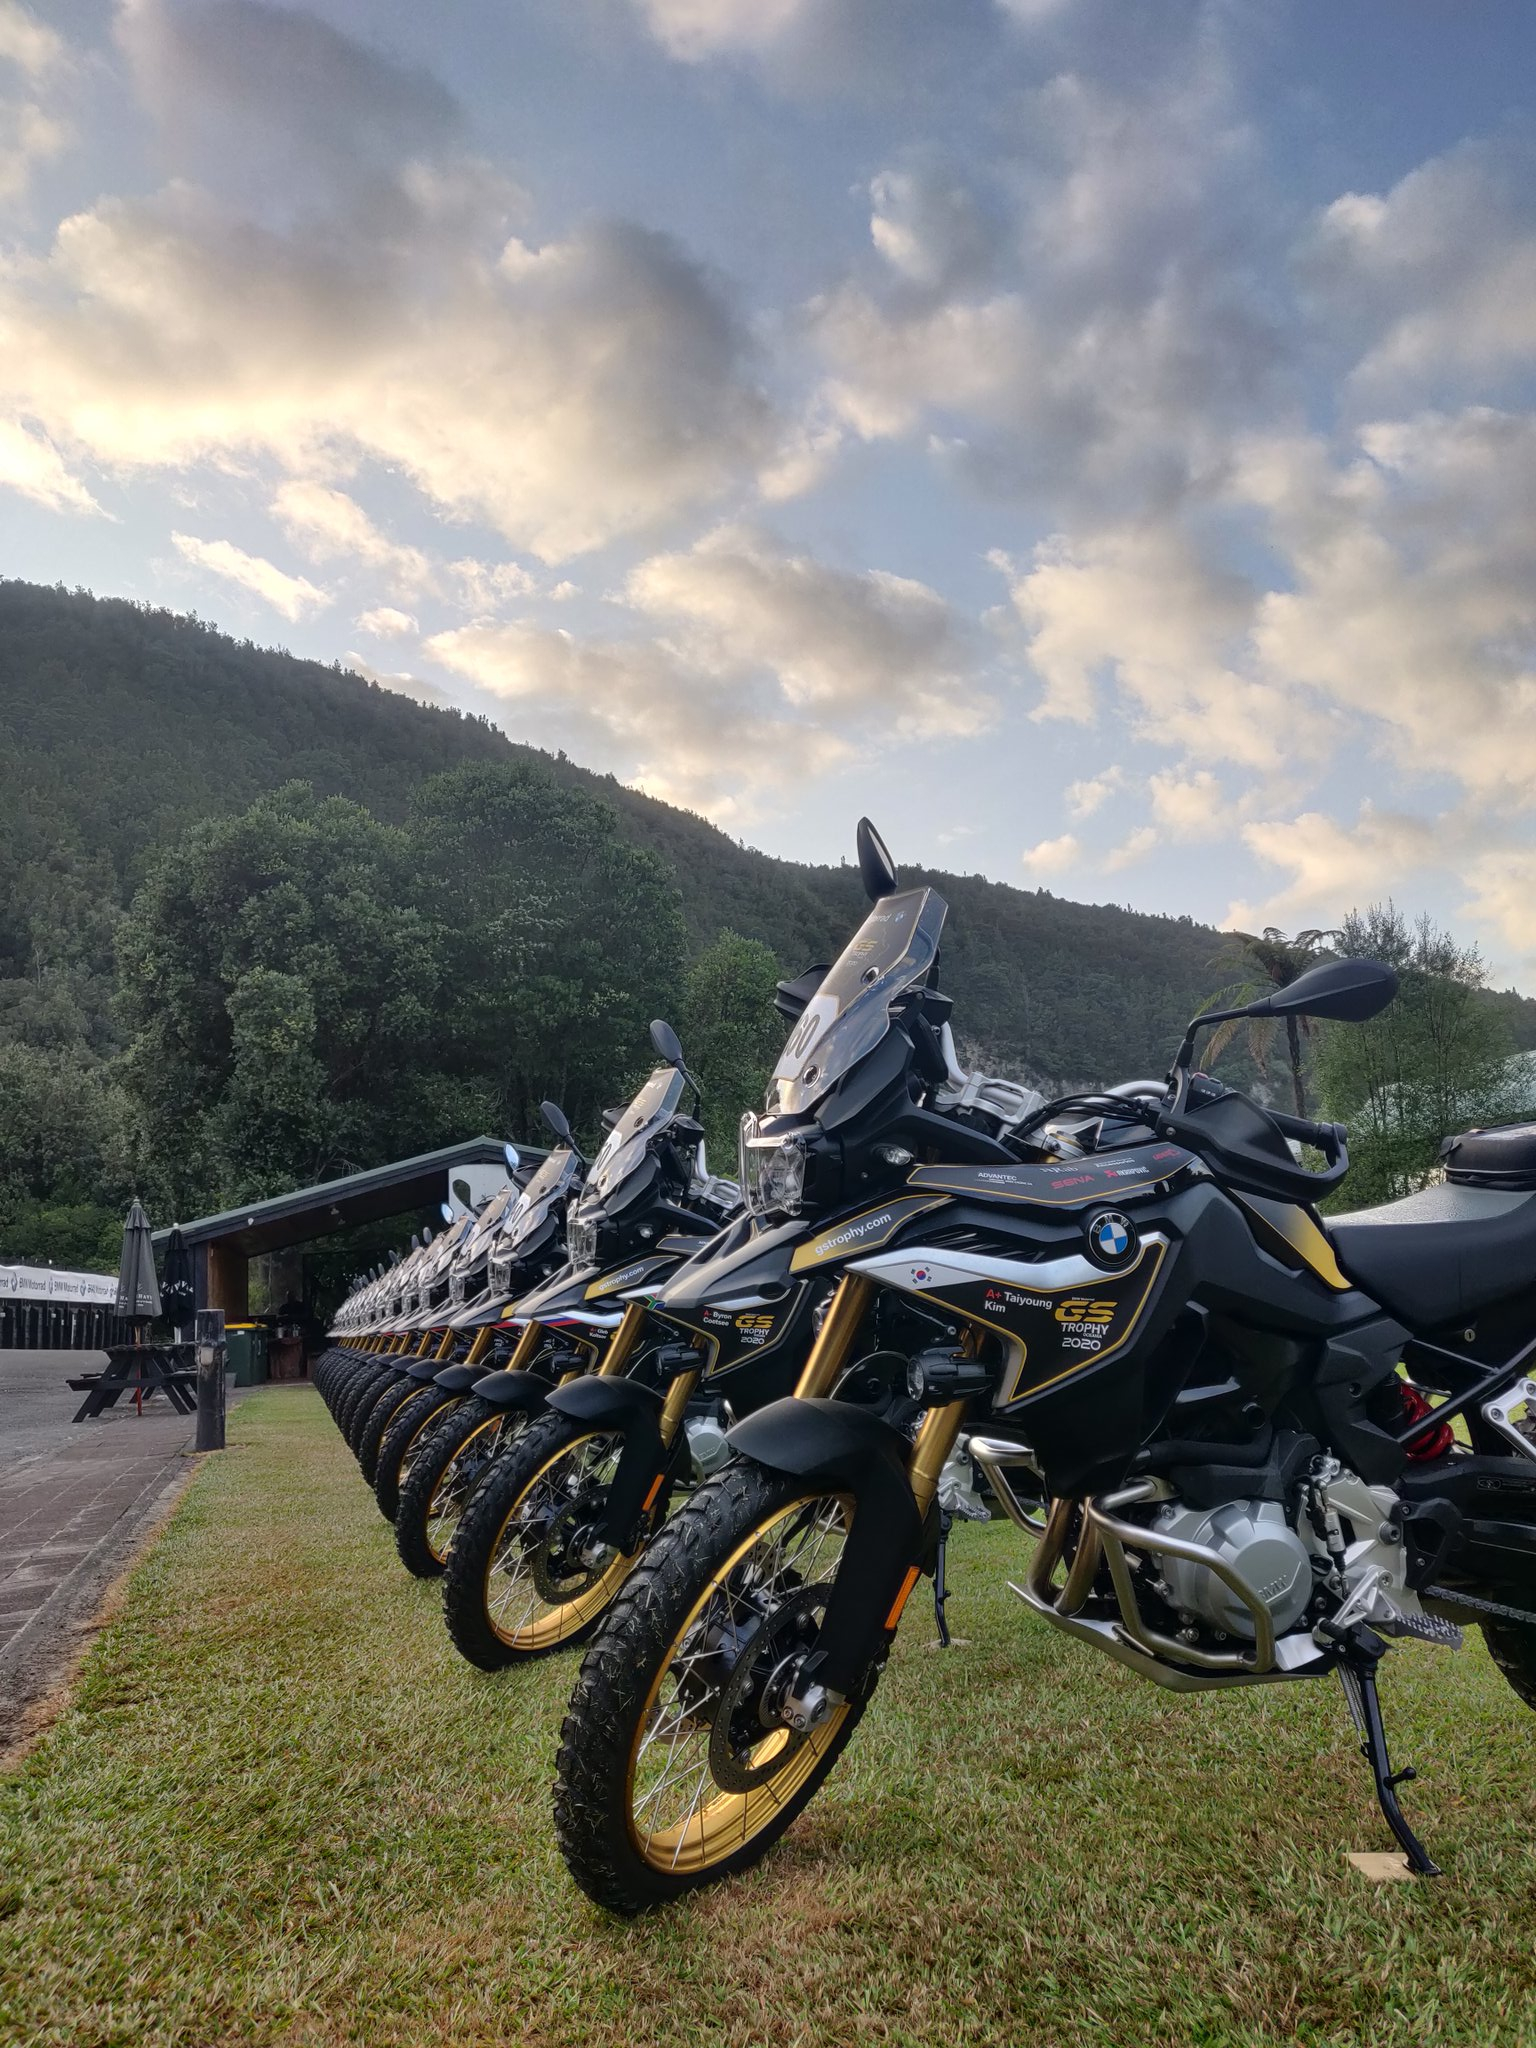 2020 bmw motorrad gs trophy is about to start. here's what